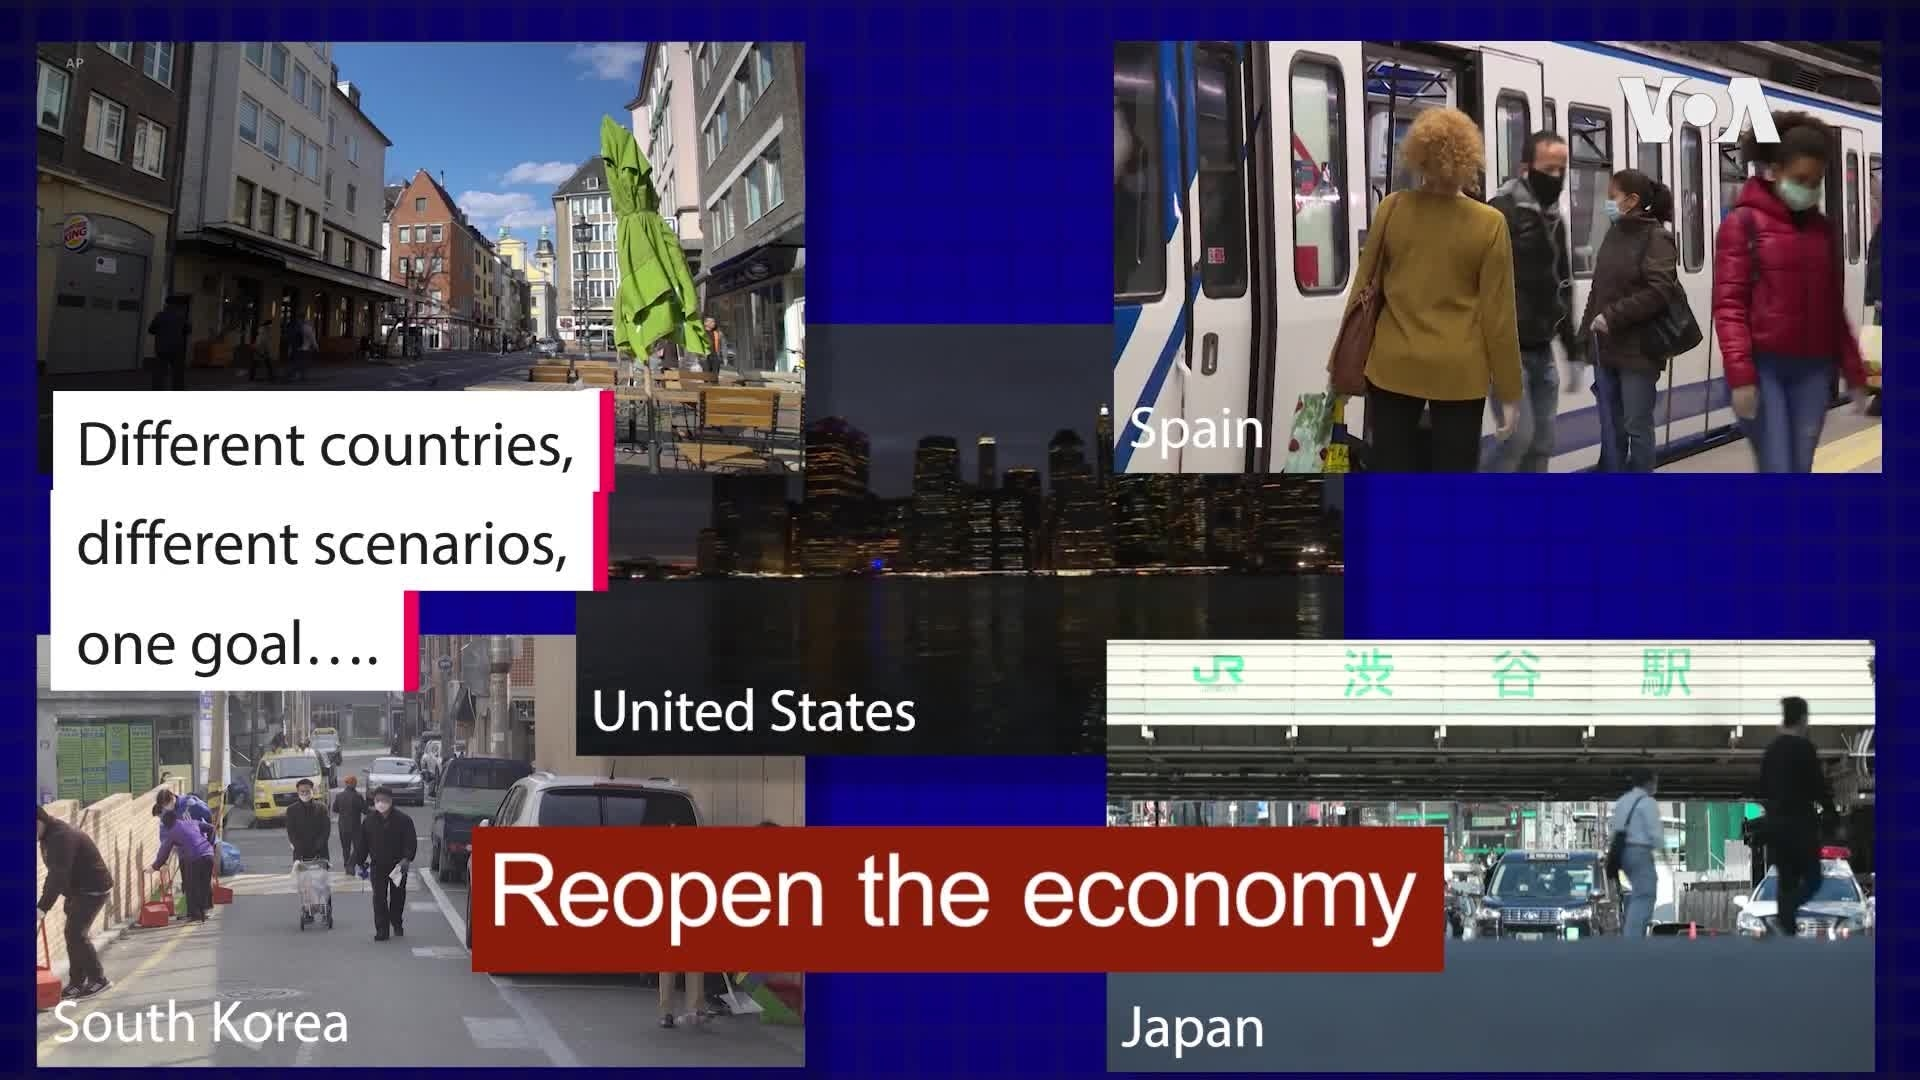 Steps to Reopening the Economy Vary by Country